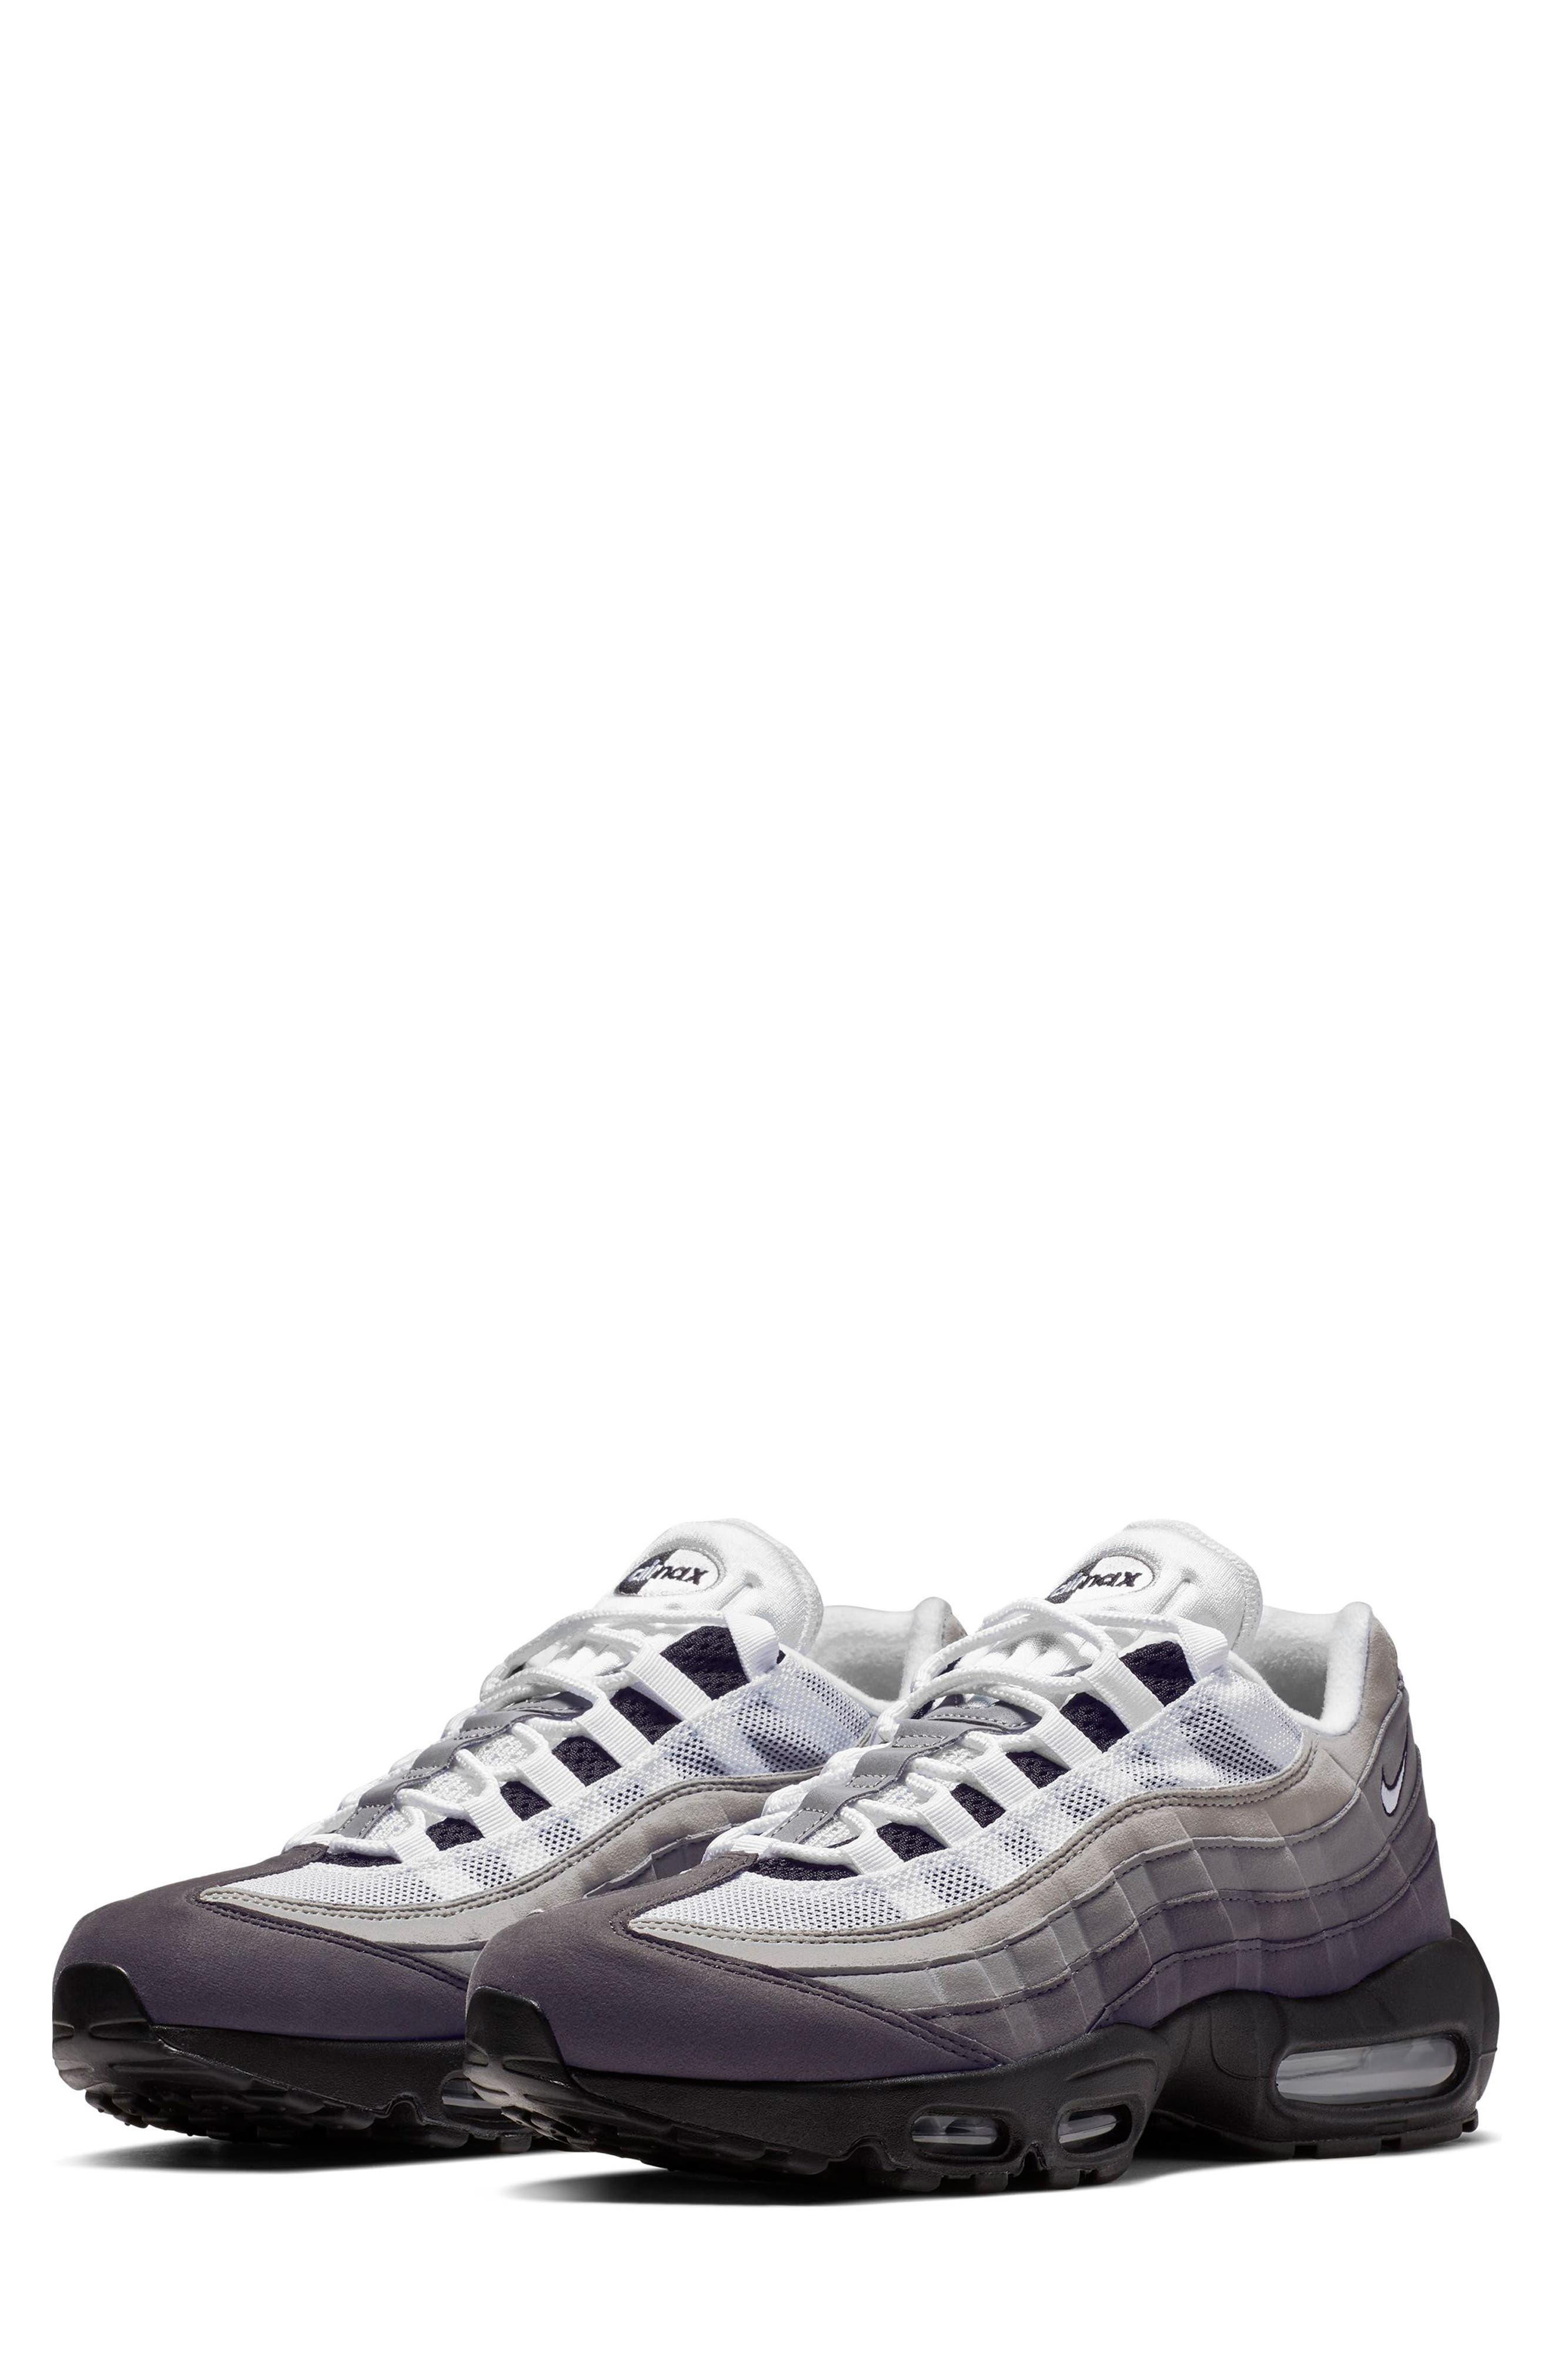 NIKE, Air Max 95 OG Sneaker, Main thumbnail 1, color, BLACK/ WHITE/ GRANITE/ DUST